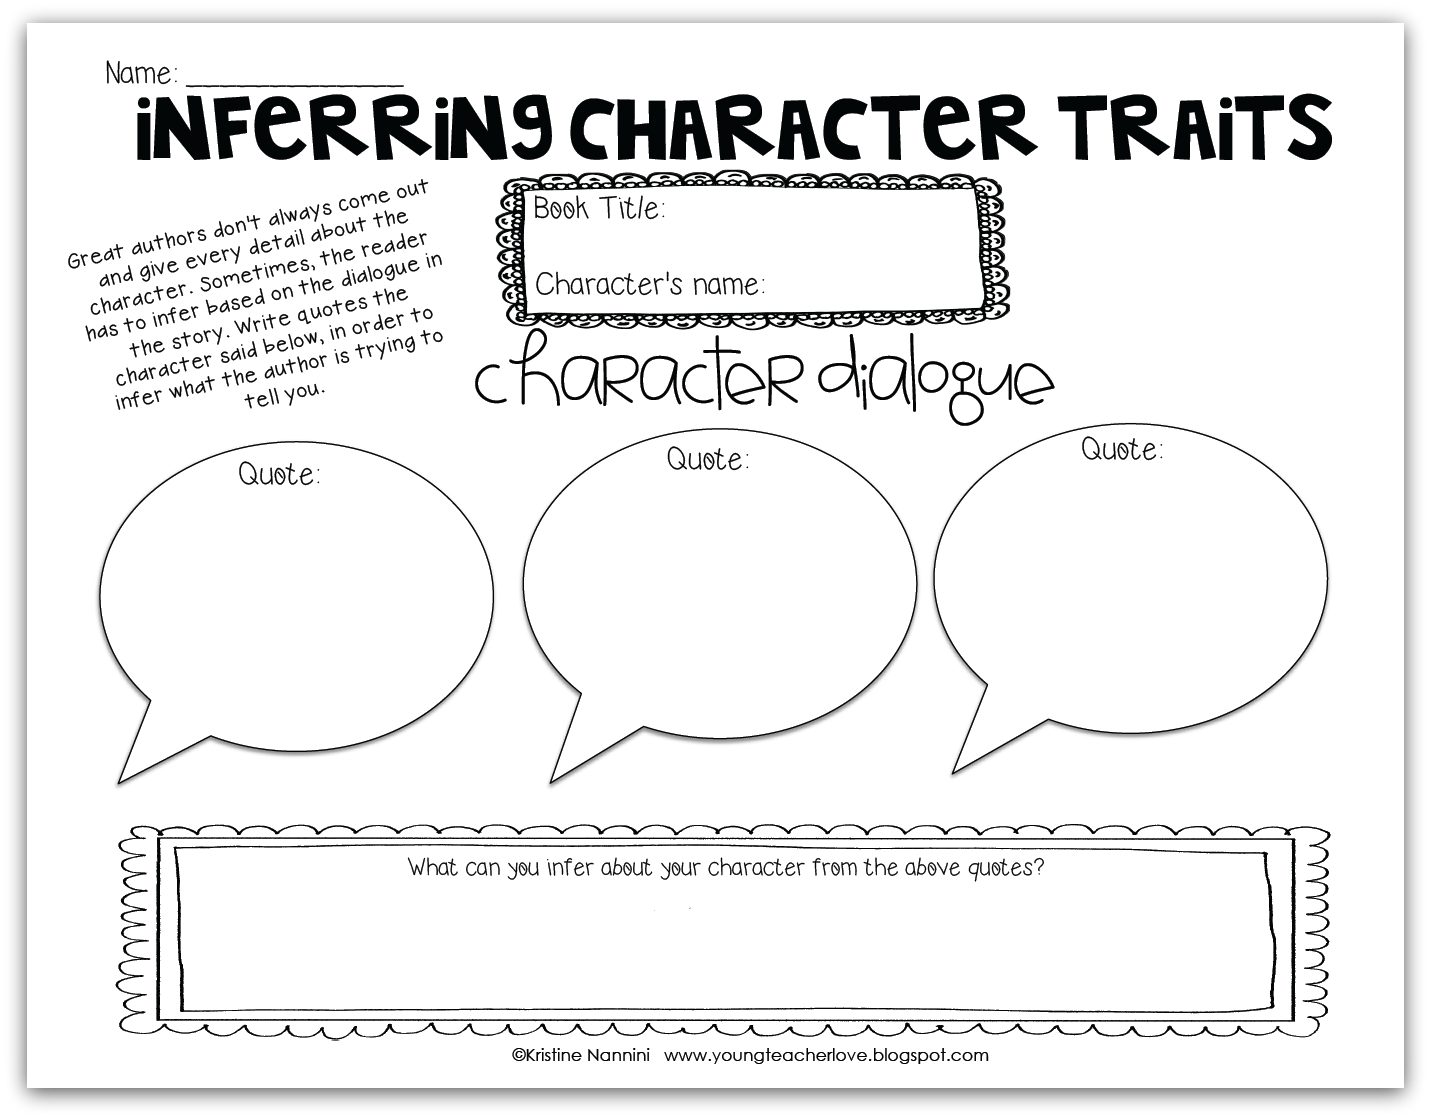 hight resolution of Inferring Character Traits Through Dialogue (Plus a Free Graphic Organizer)  - Young Teacher Love   Free graphic organizers